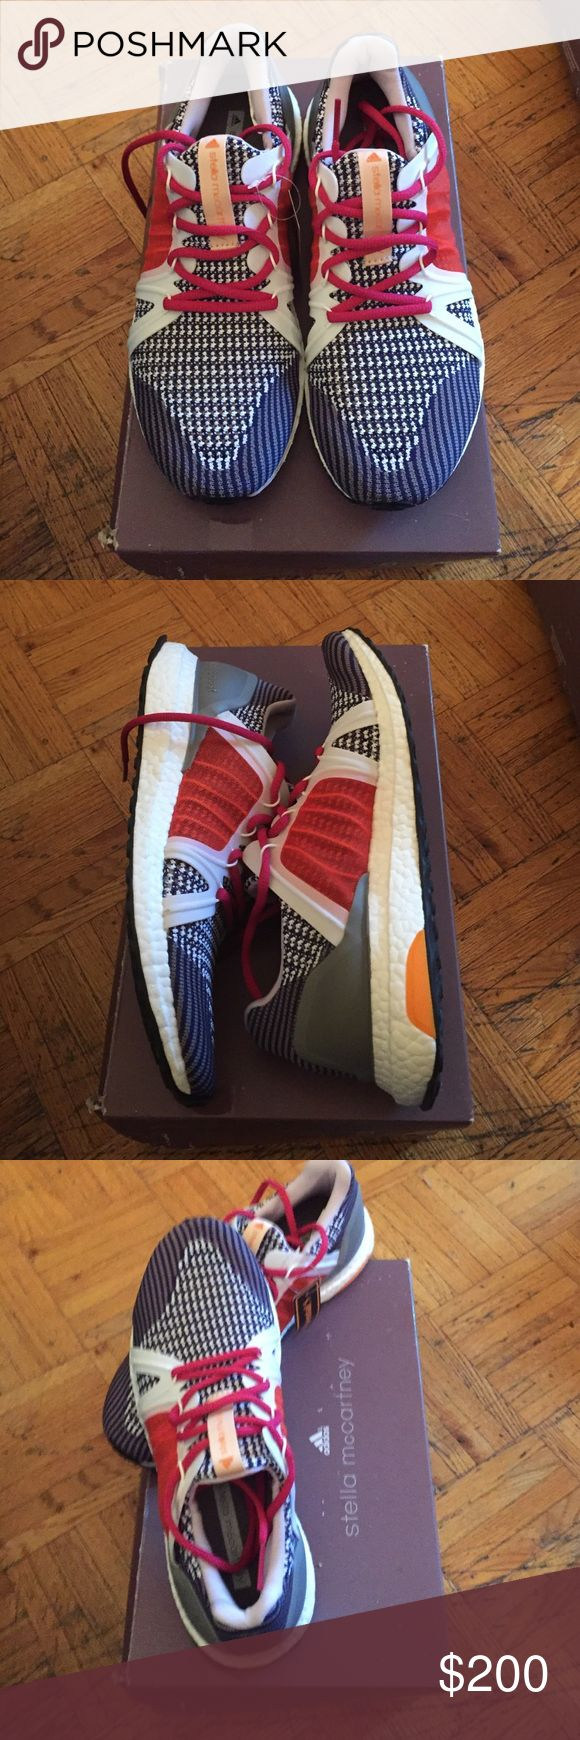 ADIDAS STELLA MCCARTNEY ULTRA BOOST RUNNING SHOES Brand new in the box. ULTRA BOOST SHOES STANDOUT RUNNING SHOES FEATURING BOOST AND DESIGNED BY STELLA MCCARTNEY. Adidas Shoes Athletic Shoes